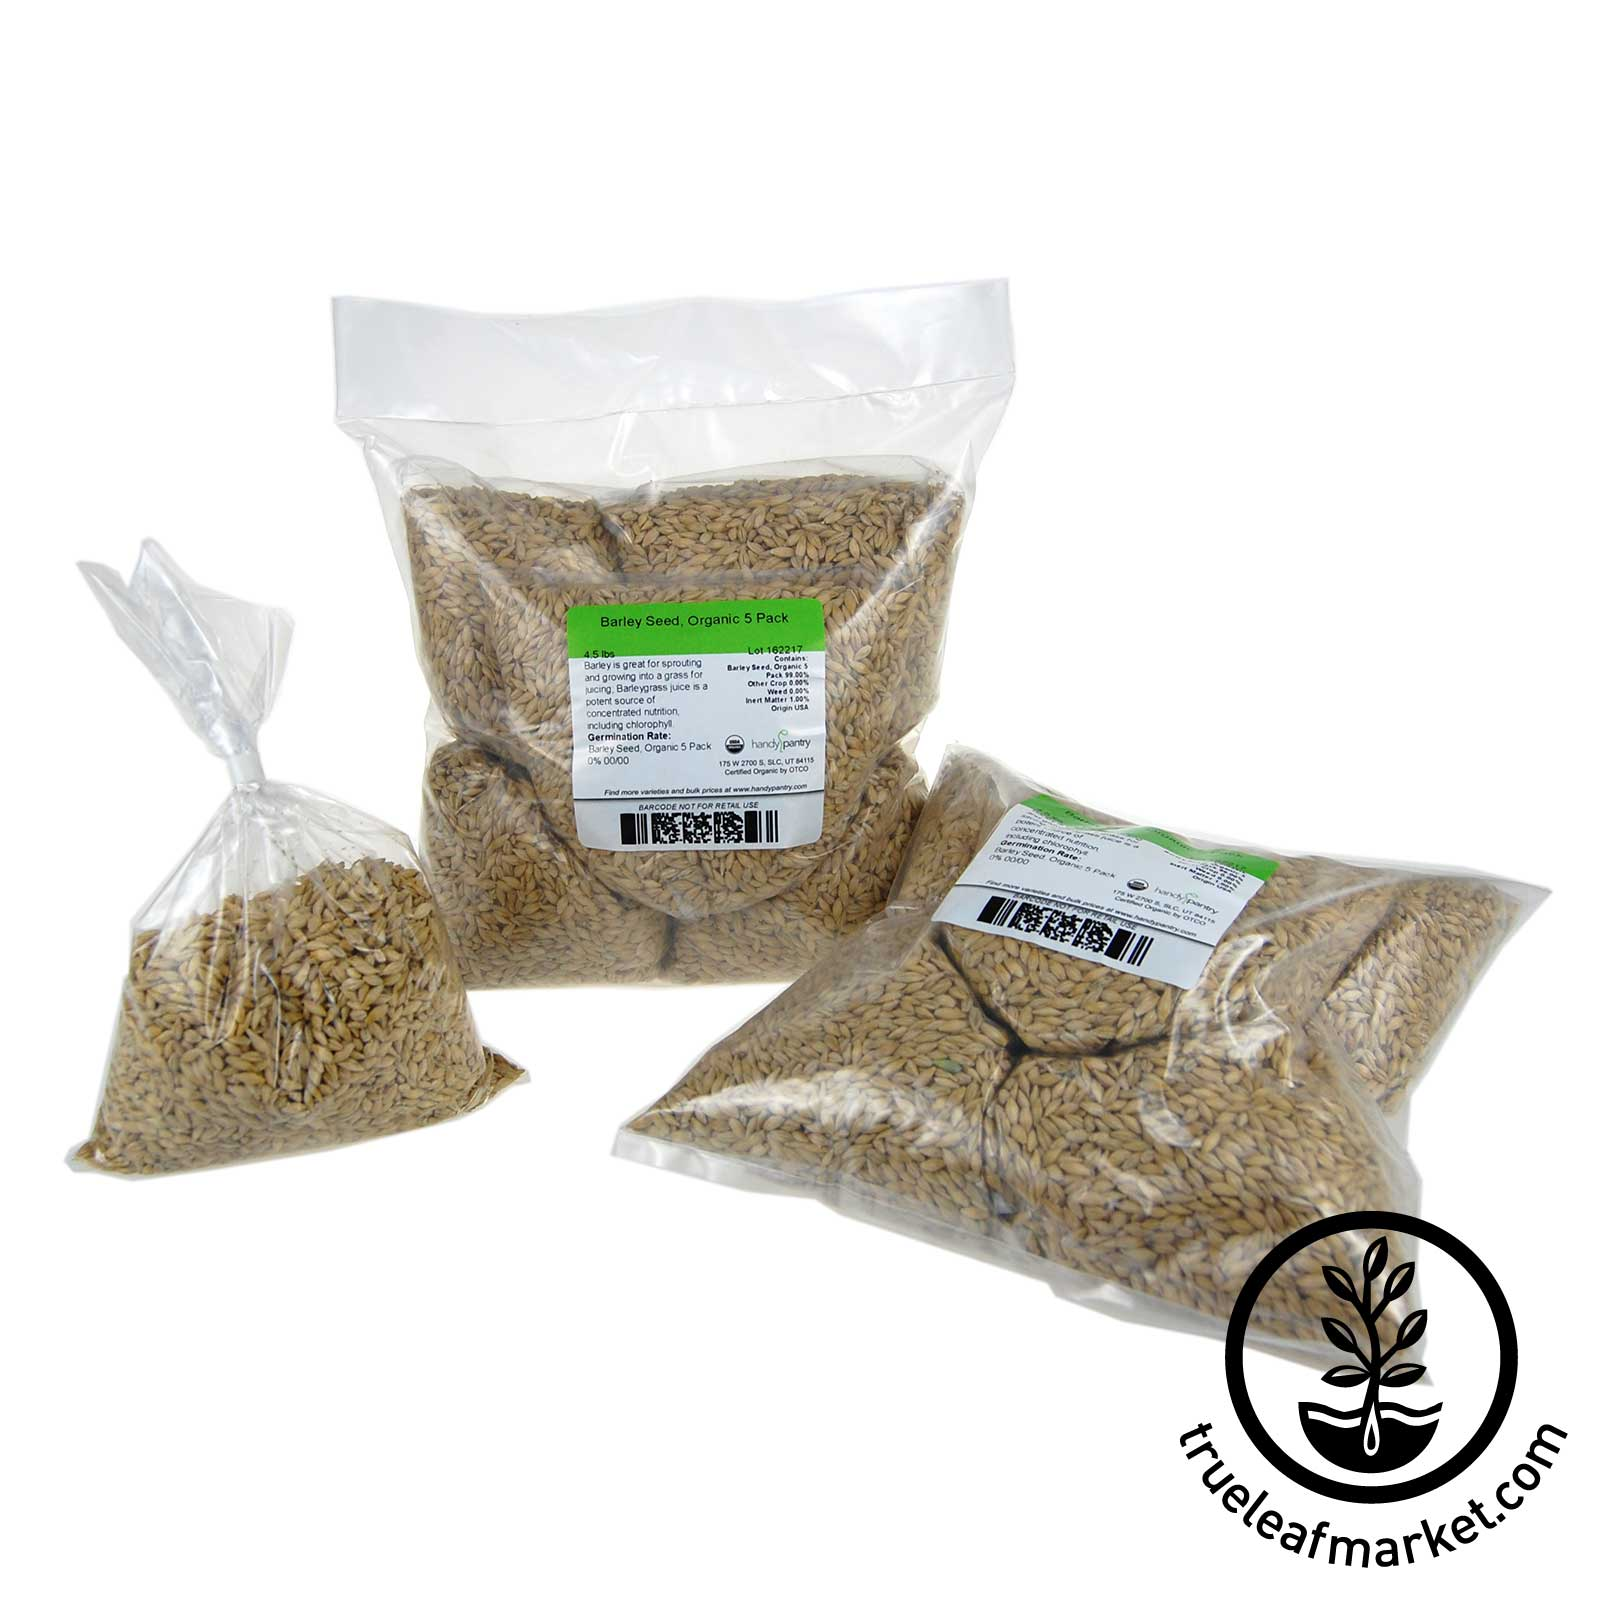 10 Pack of Pre-Measured Barley Grass Seed - For 21x11 Tray.